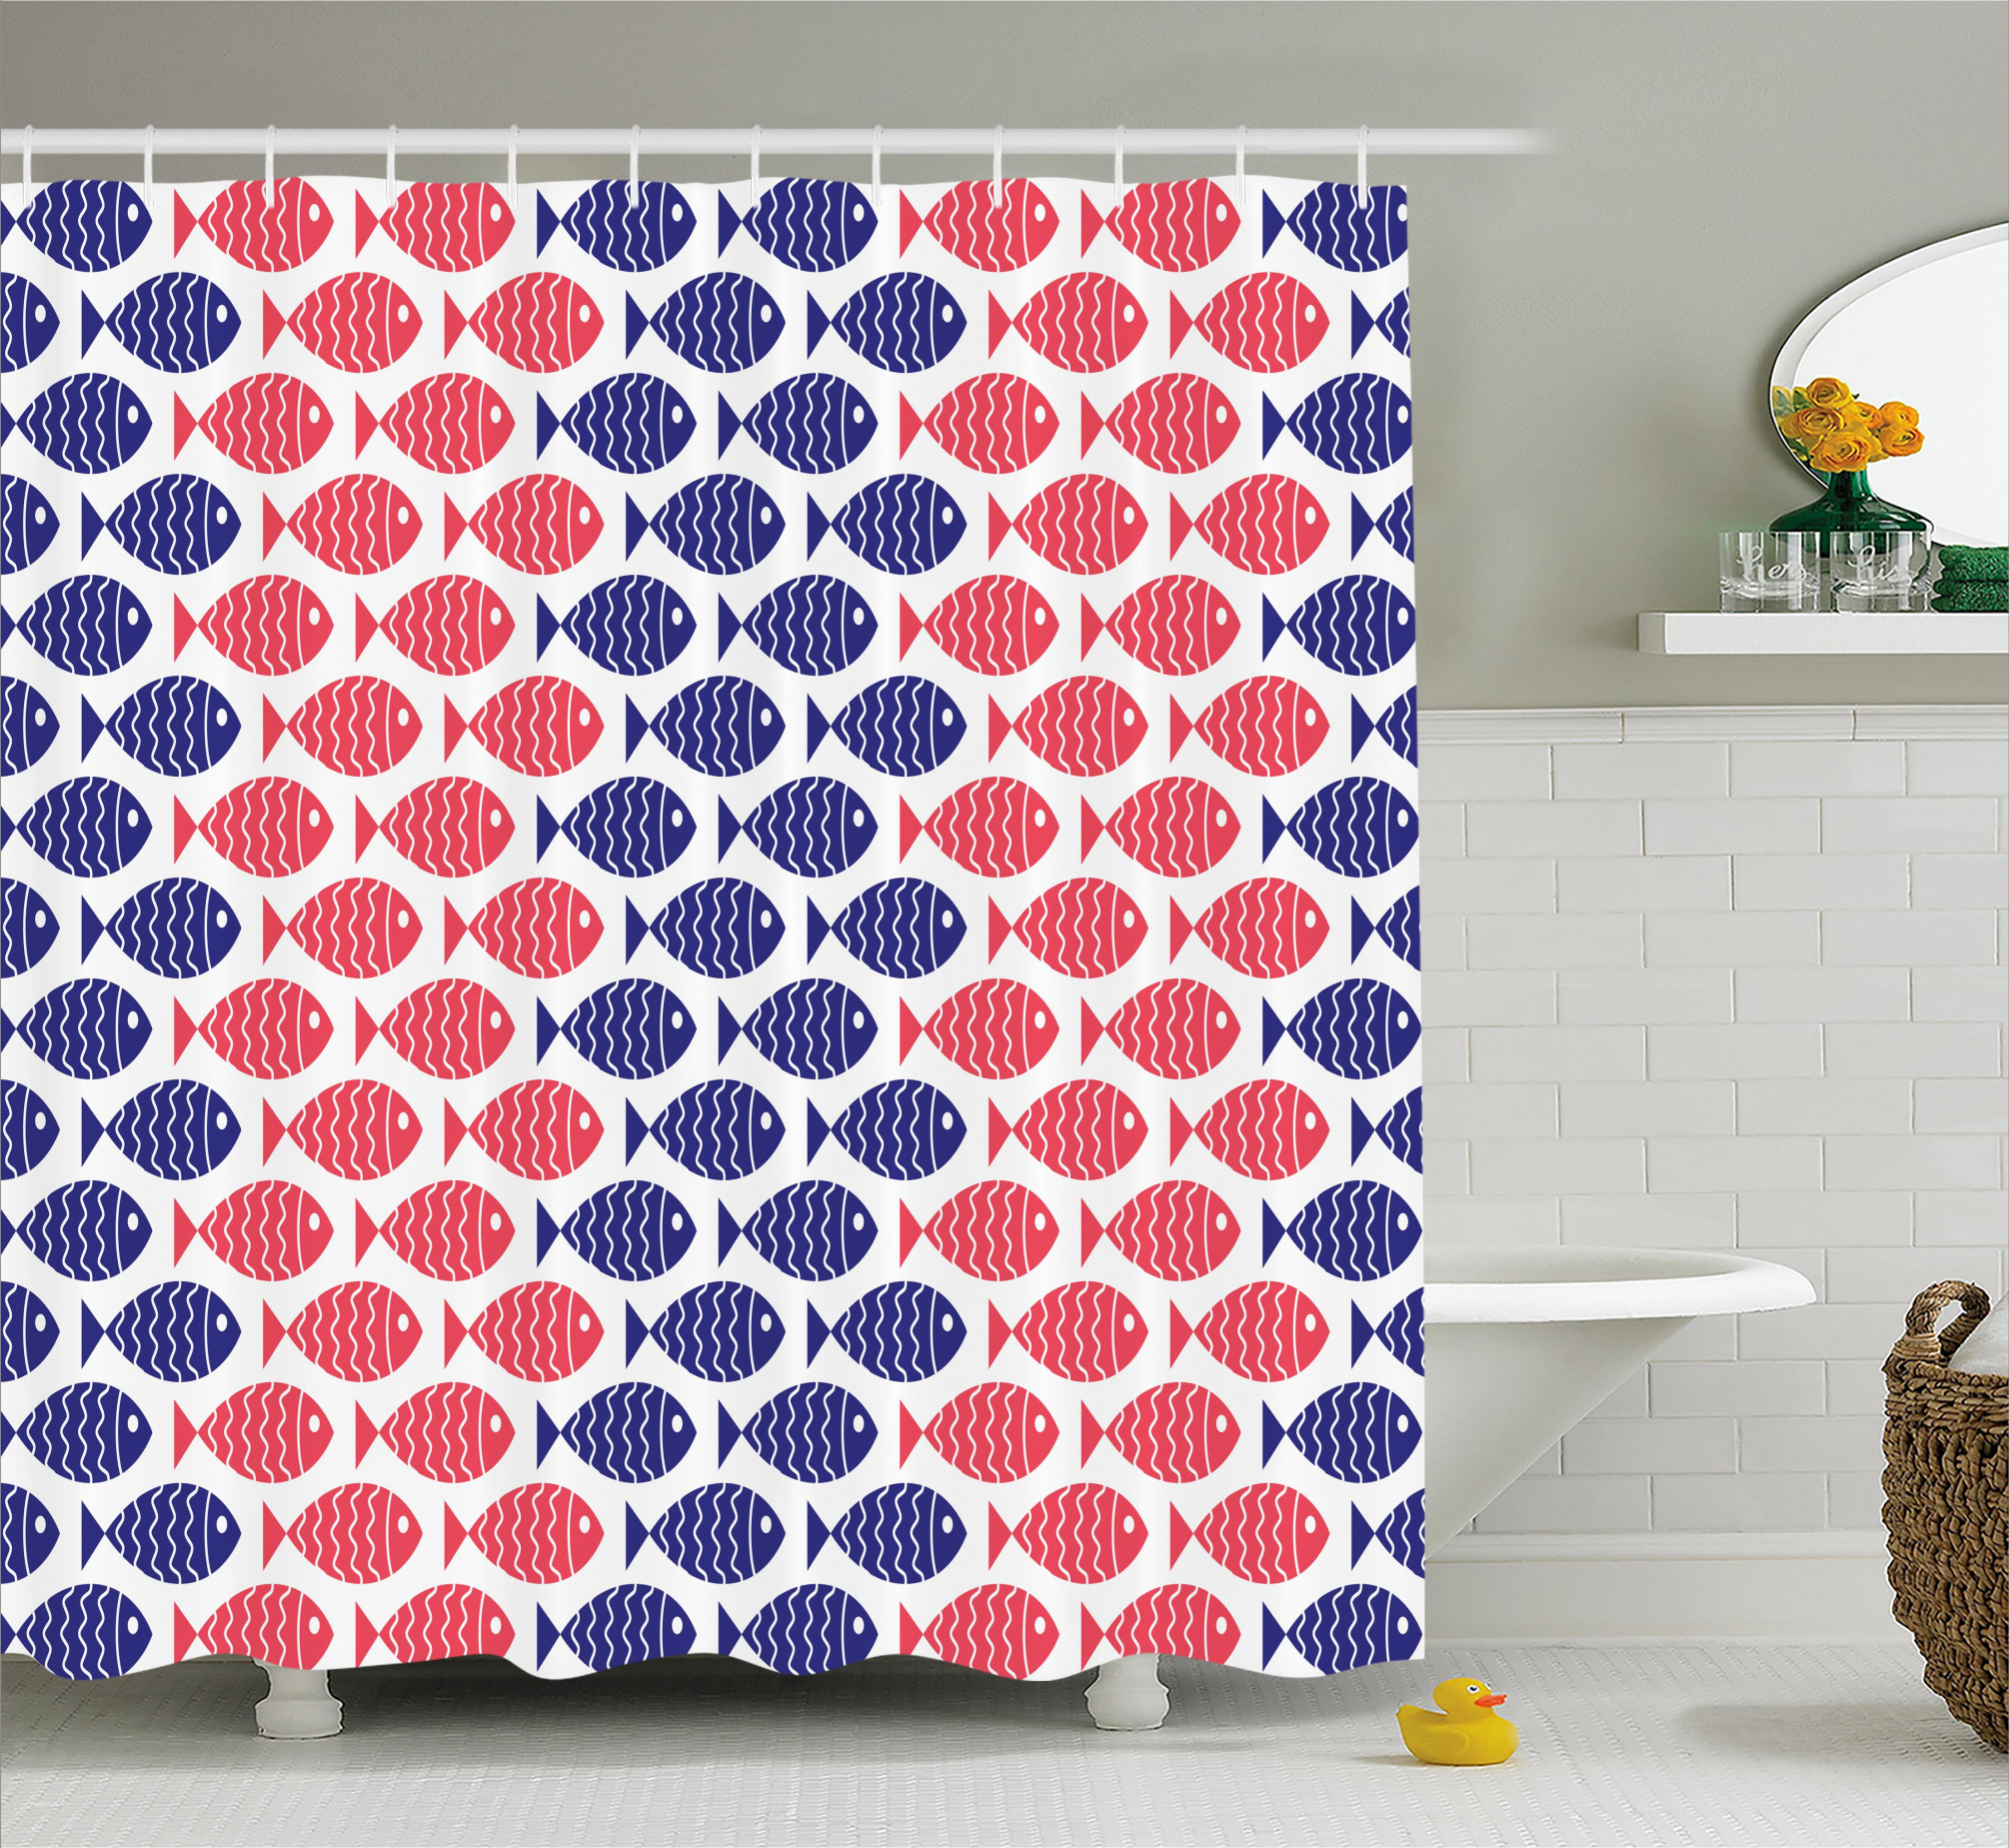 Abstract Blossoming Buds Shower Curtain. $39.90